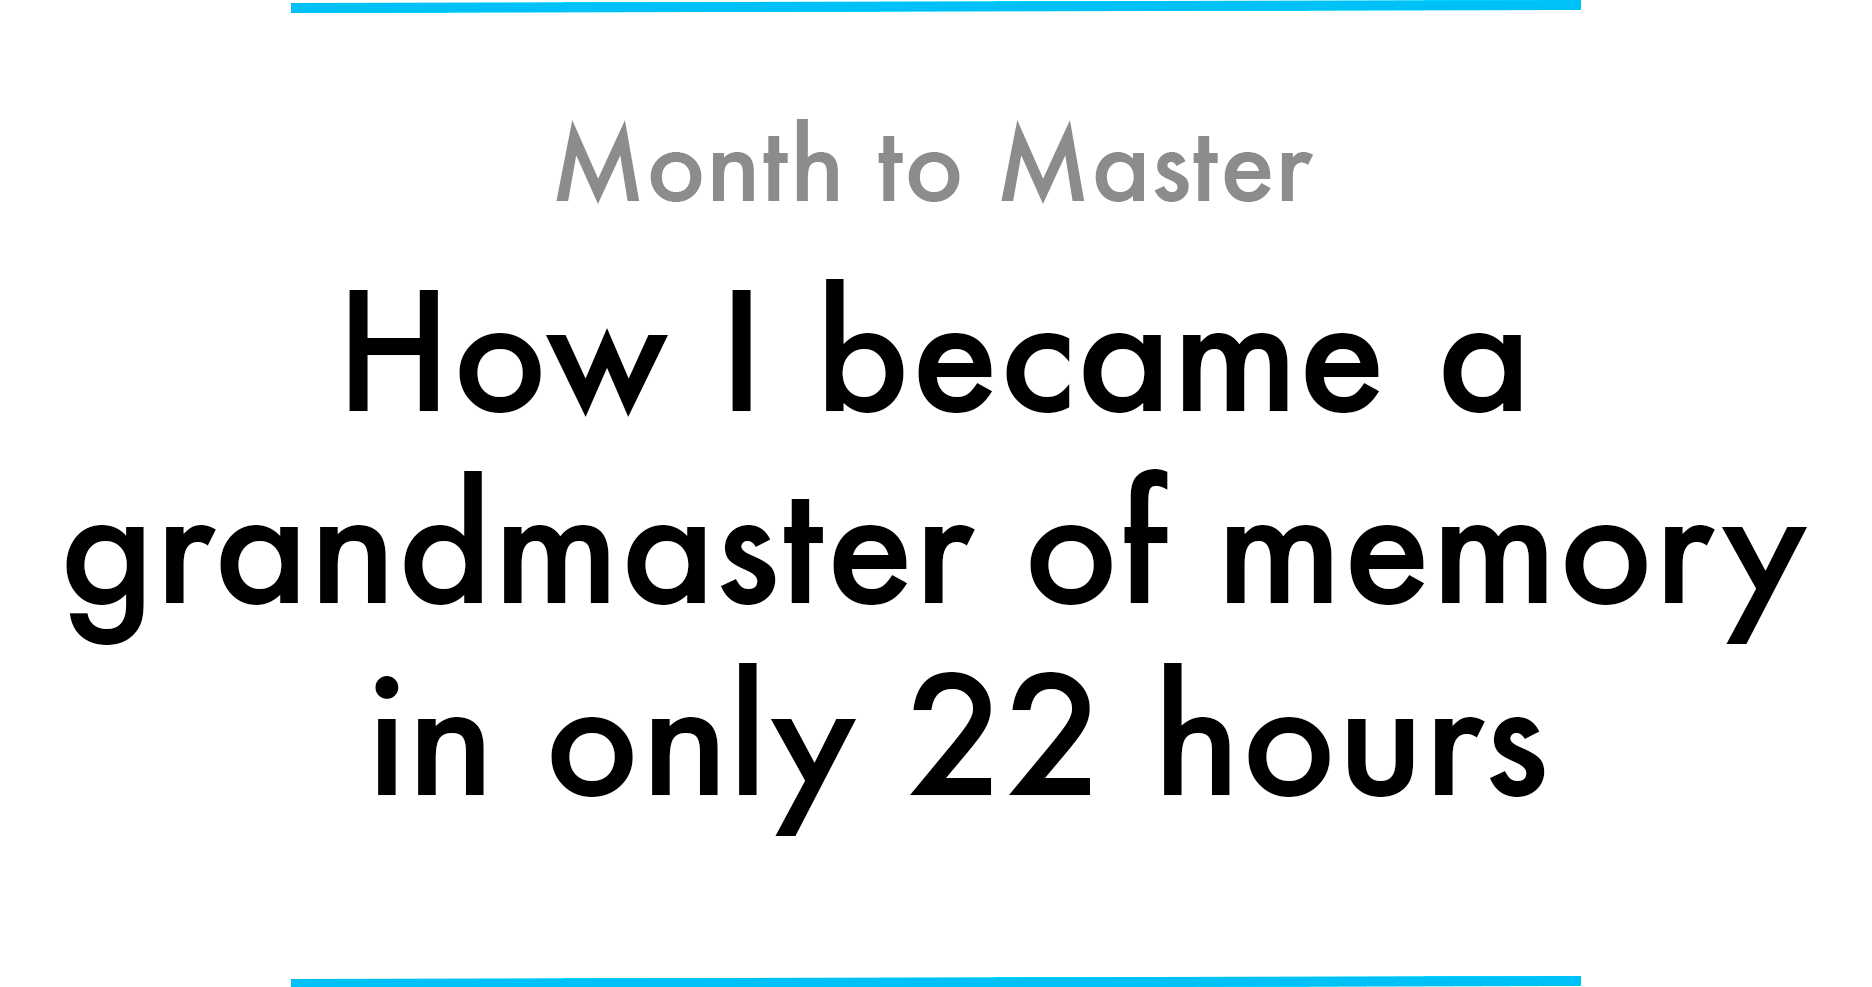 How I became a grandmaster of memory in only 22 hours